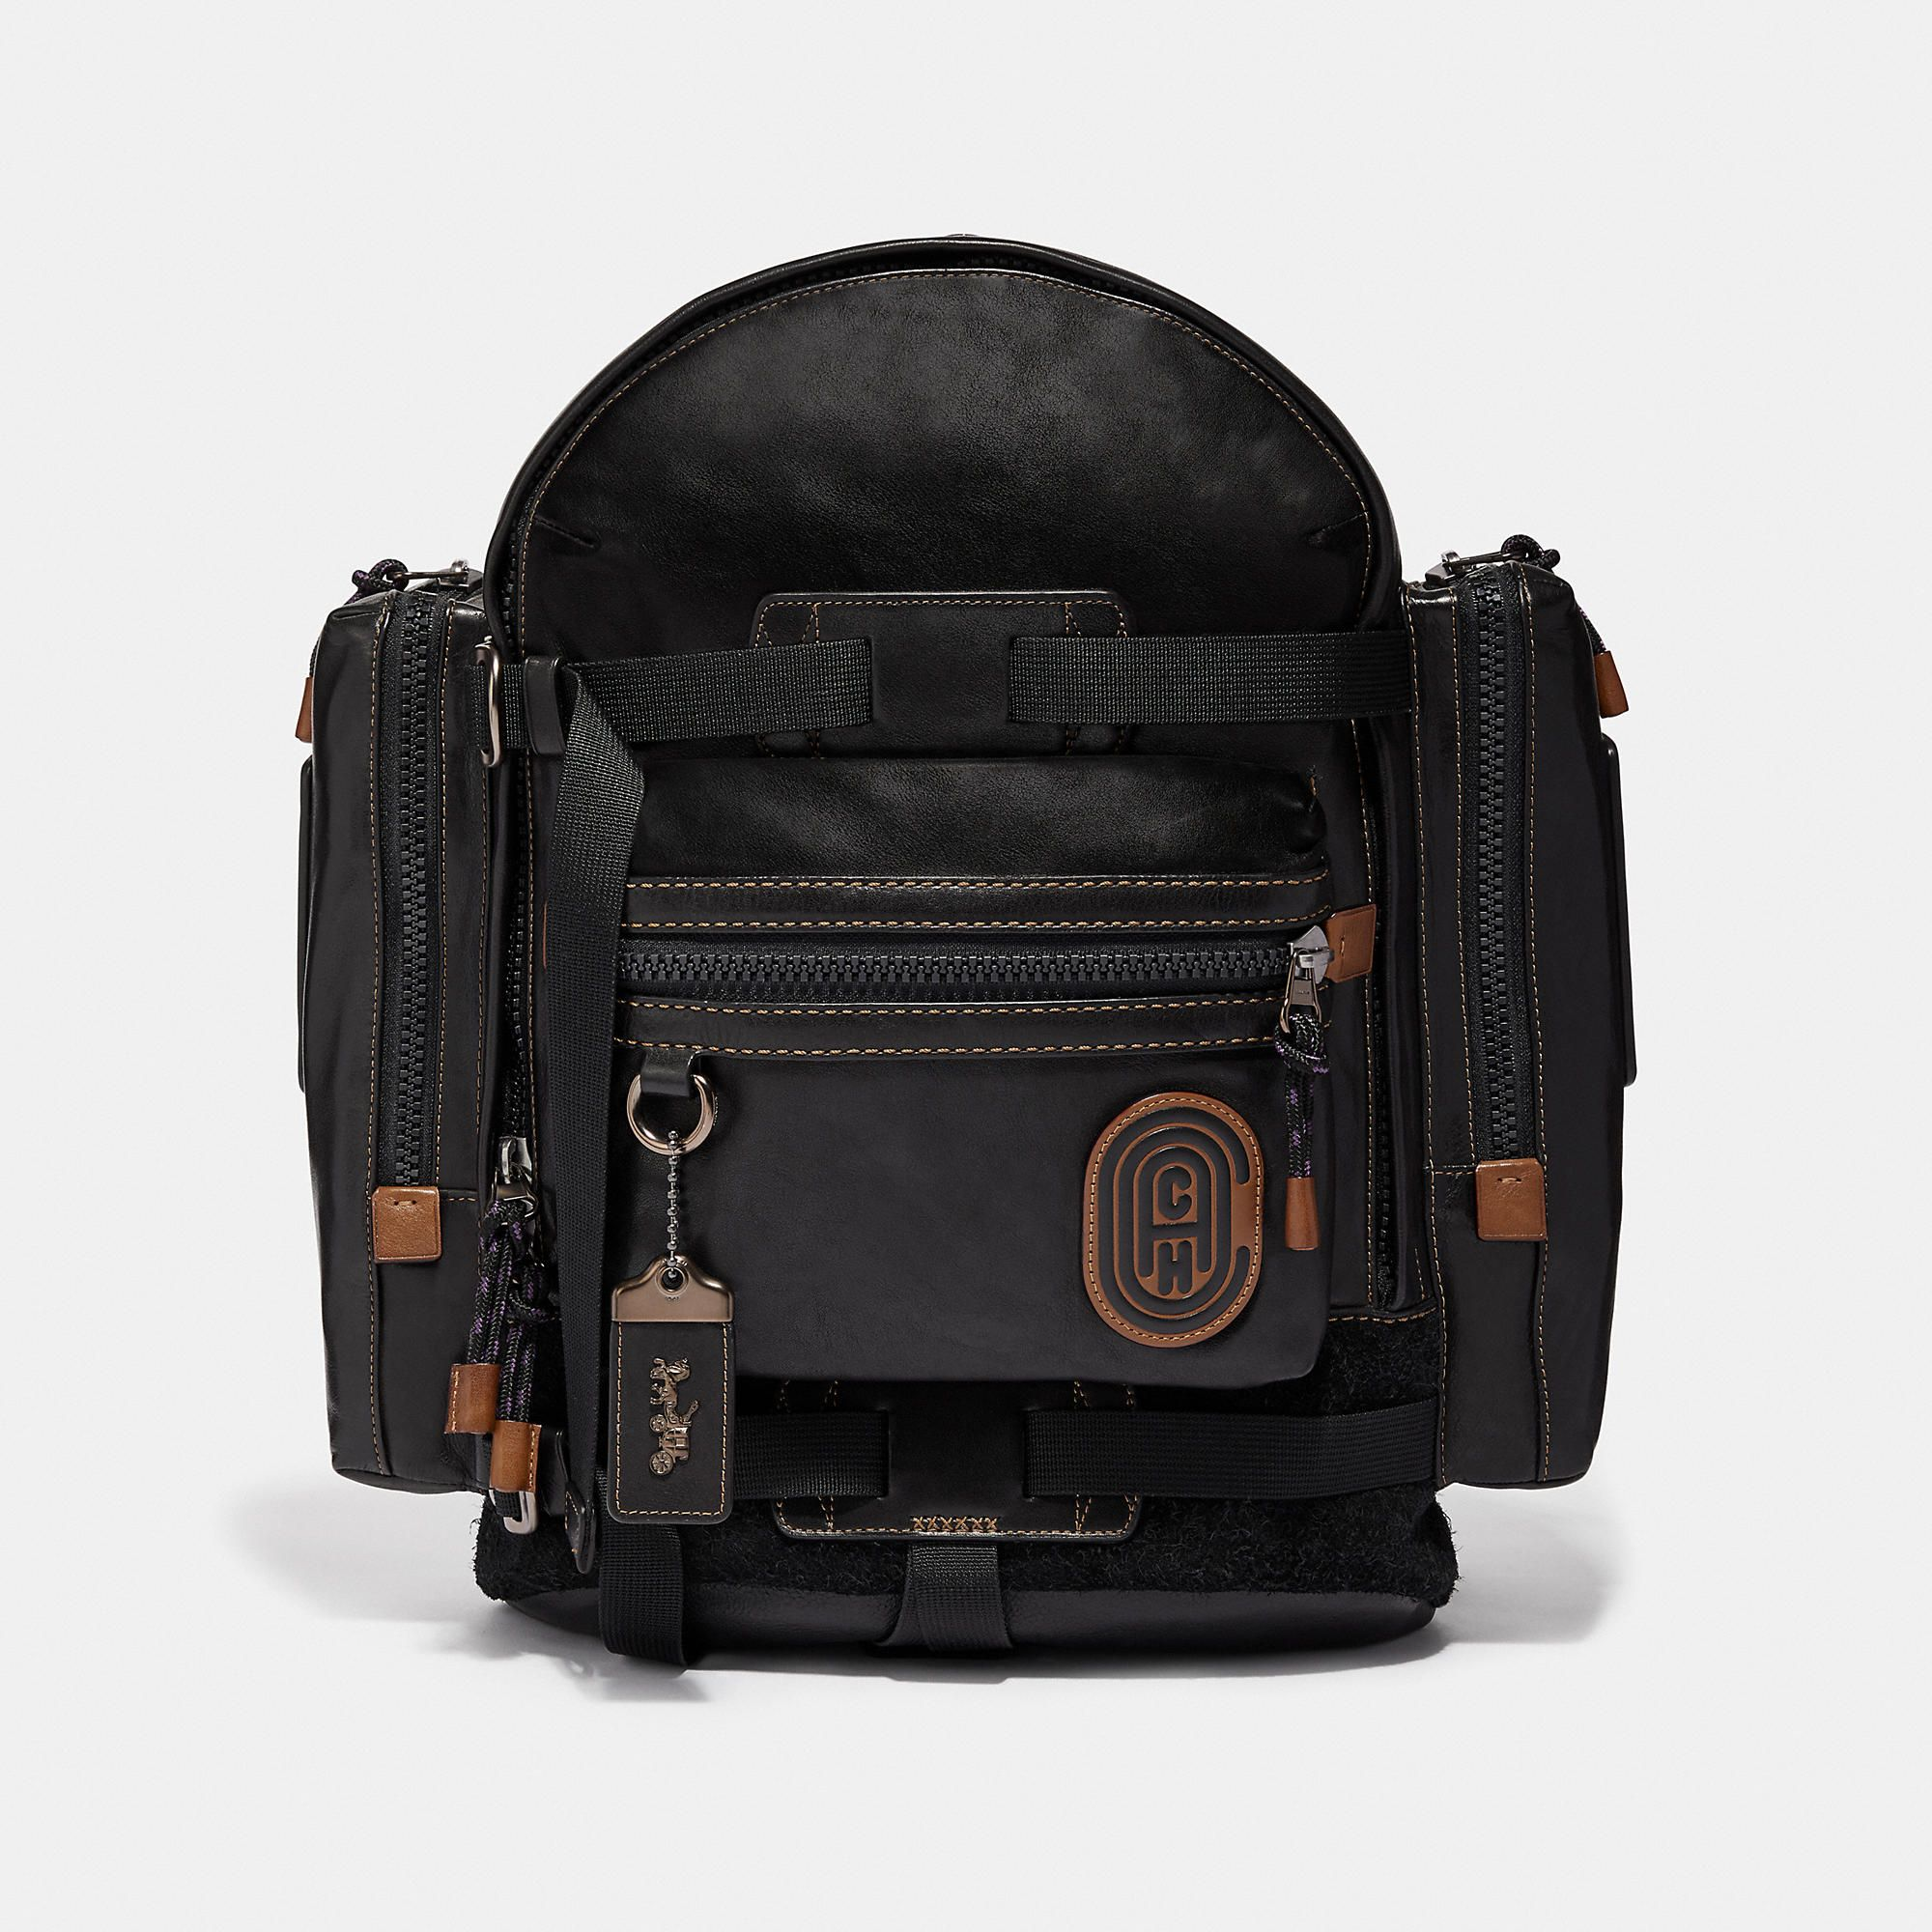 80009156522a COACH COACH RIDGE BACKPACK WITH PATCH - MEN S.  coach  bags  lining   backpacks  suede